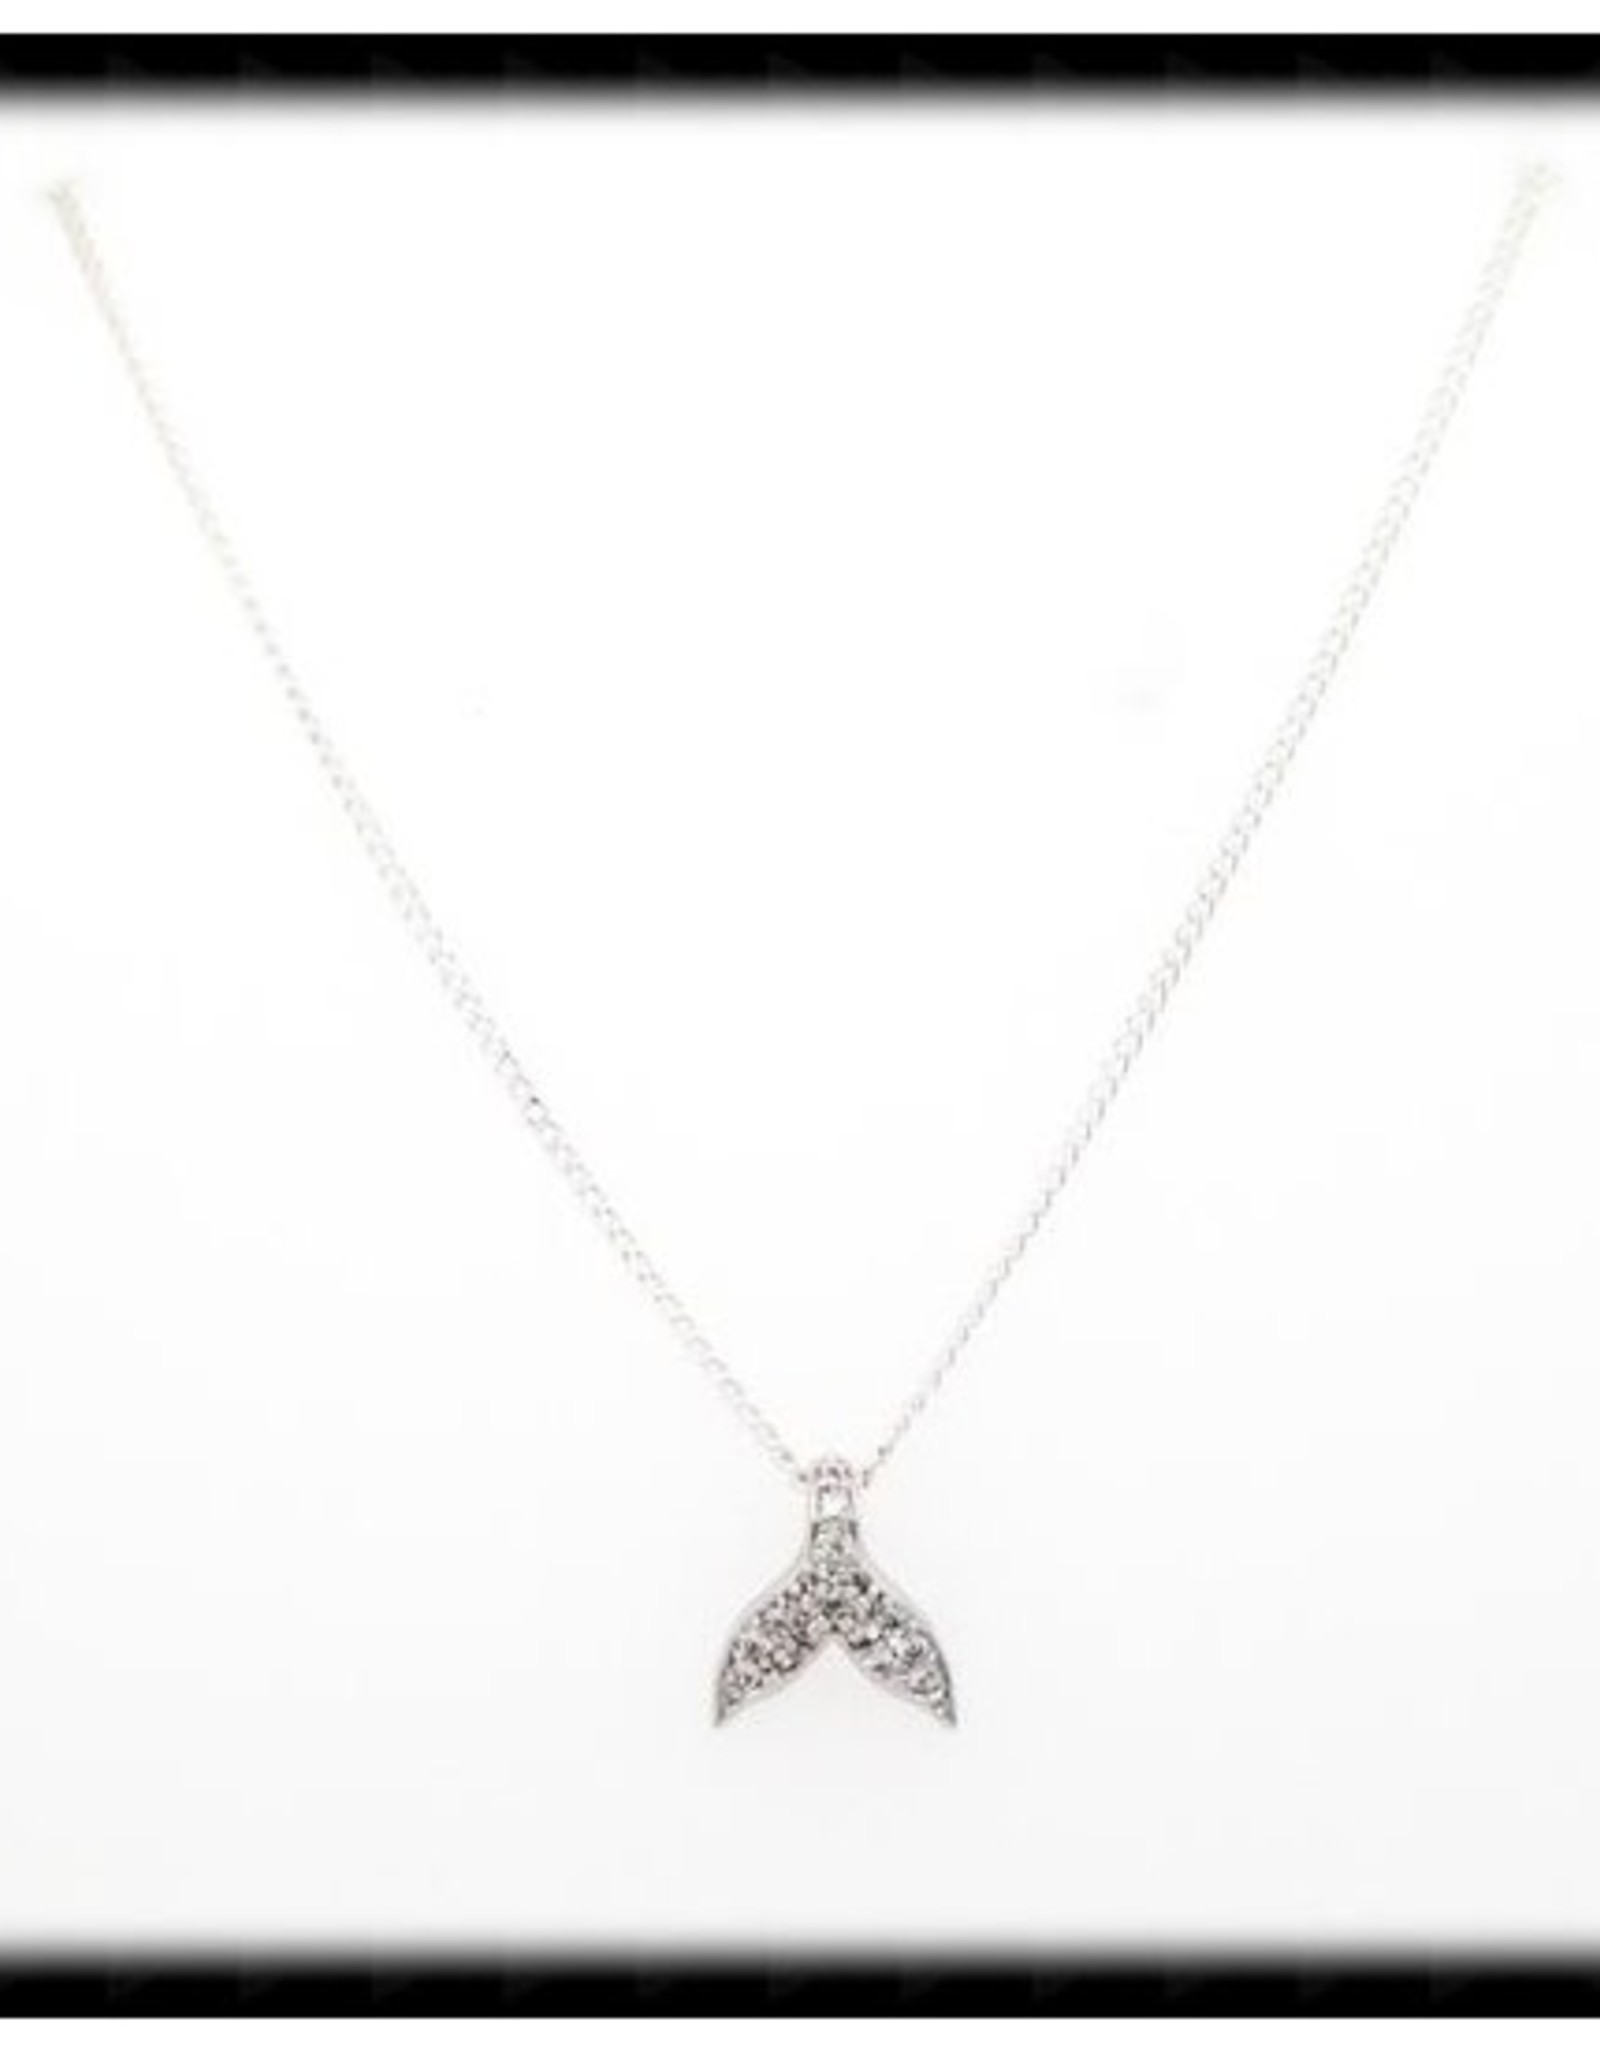 The Beaded Wire Whale's Tail Necklace